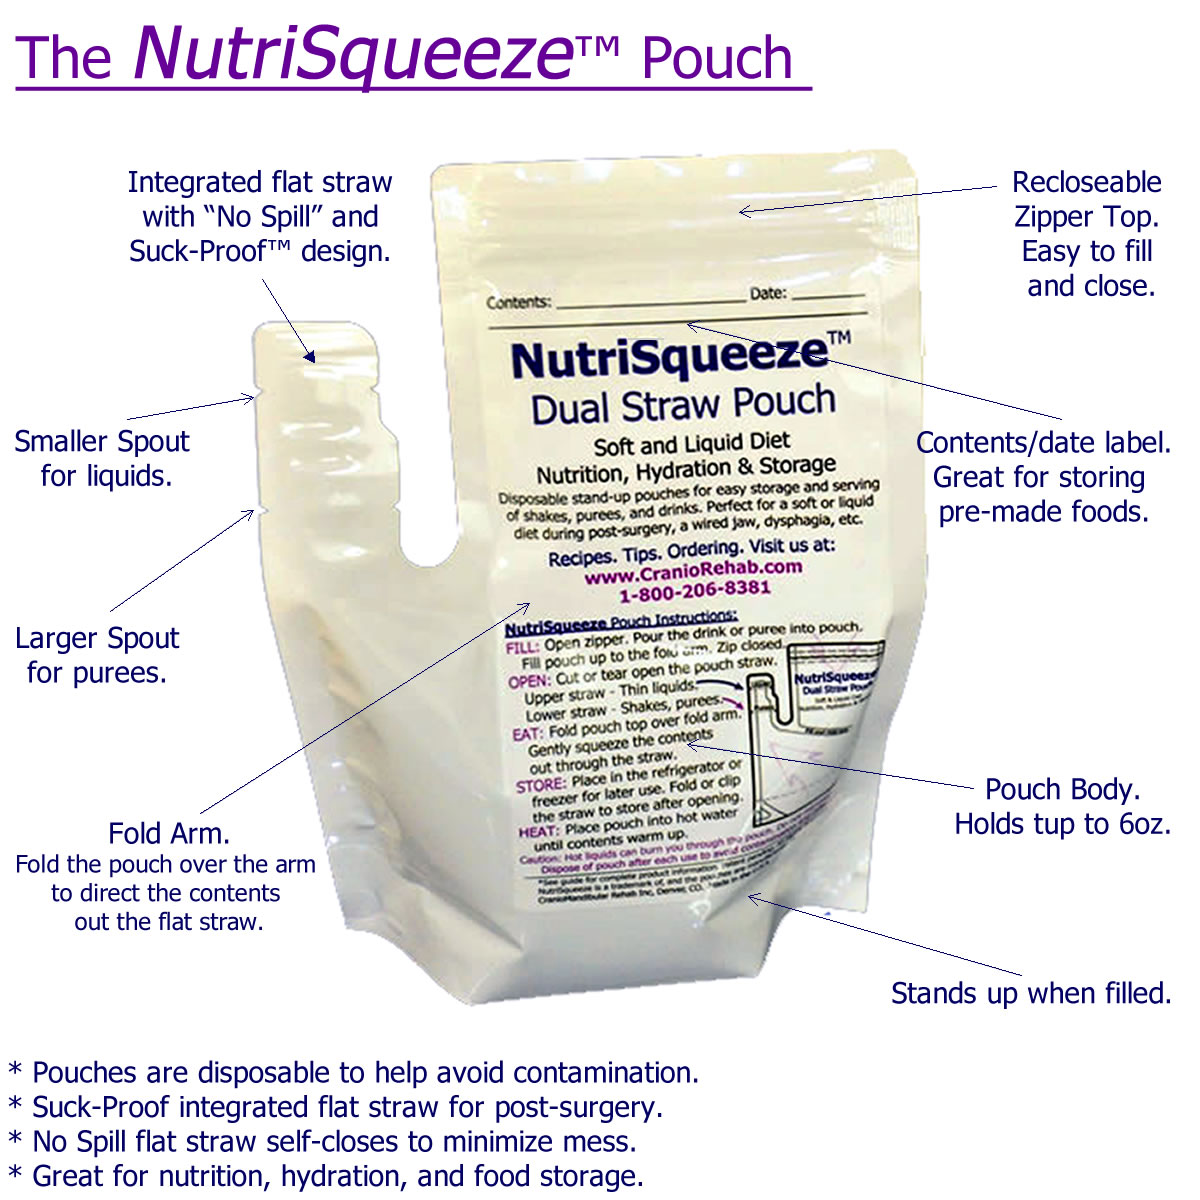 NutriSqueeze pouch features